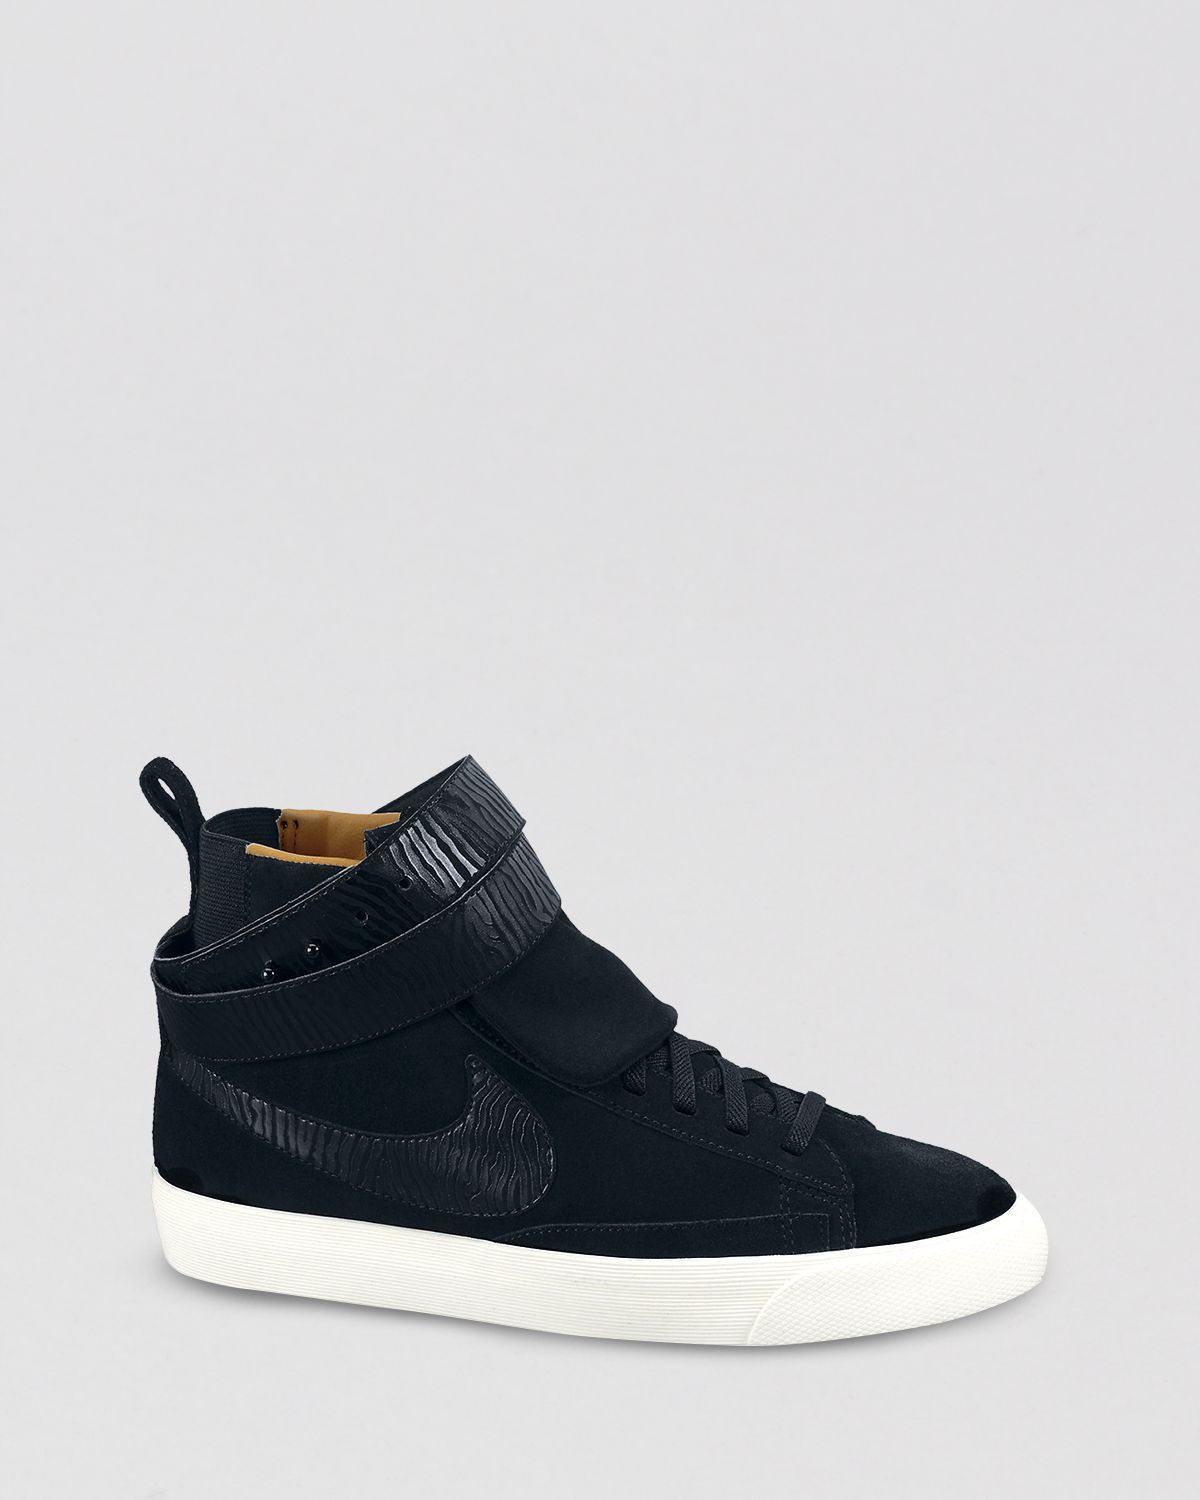 nike high top sneakers blazer twist suede in black lyst. Black Bedroom Furniture Sets. Home Design Ideas